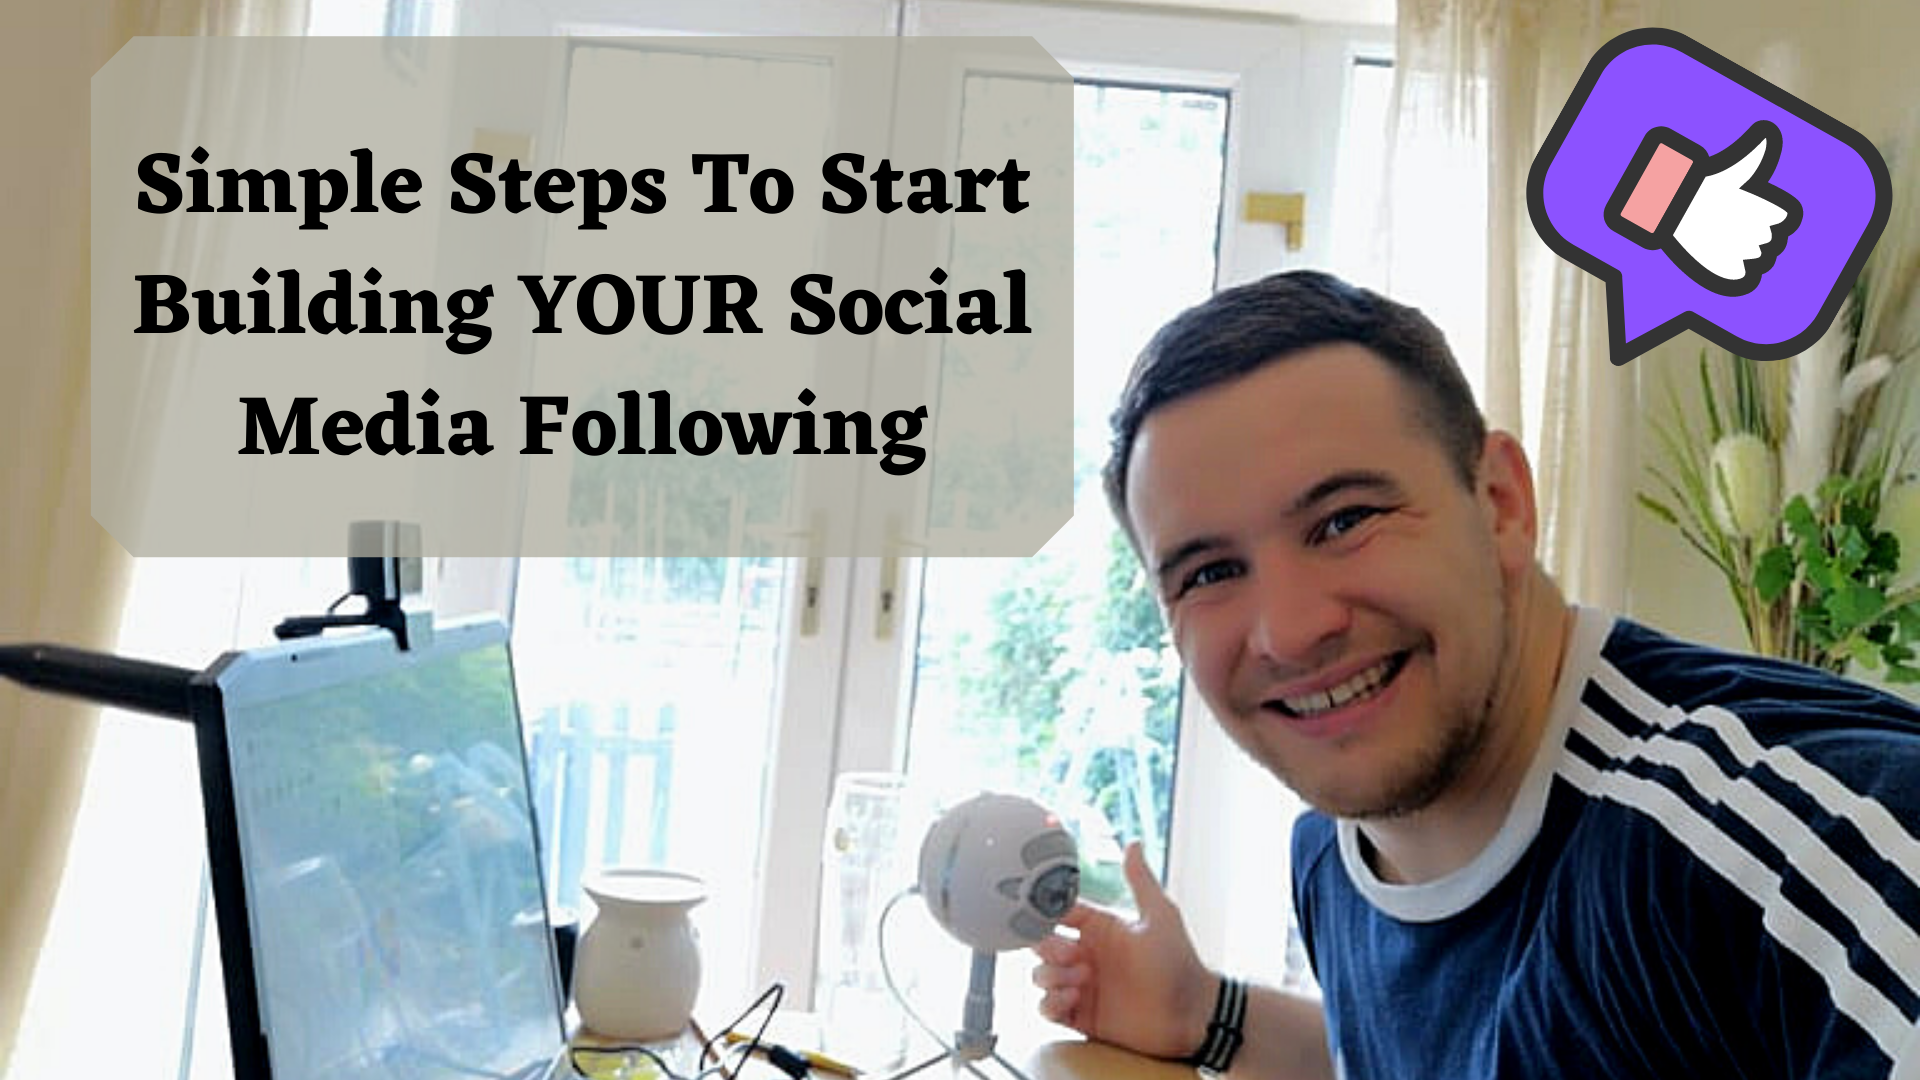 Simple Steps To Start Building YOUR Social Media Following